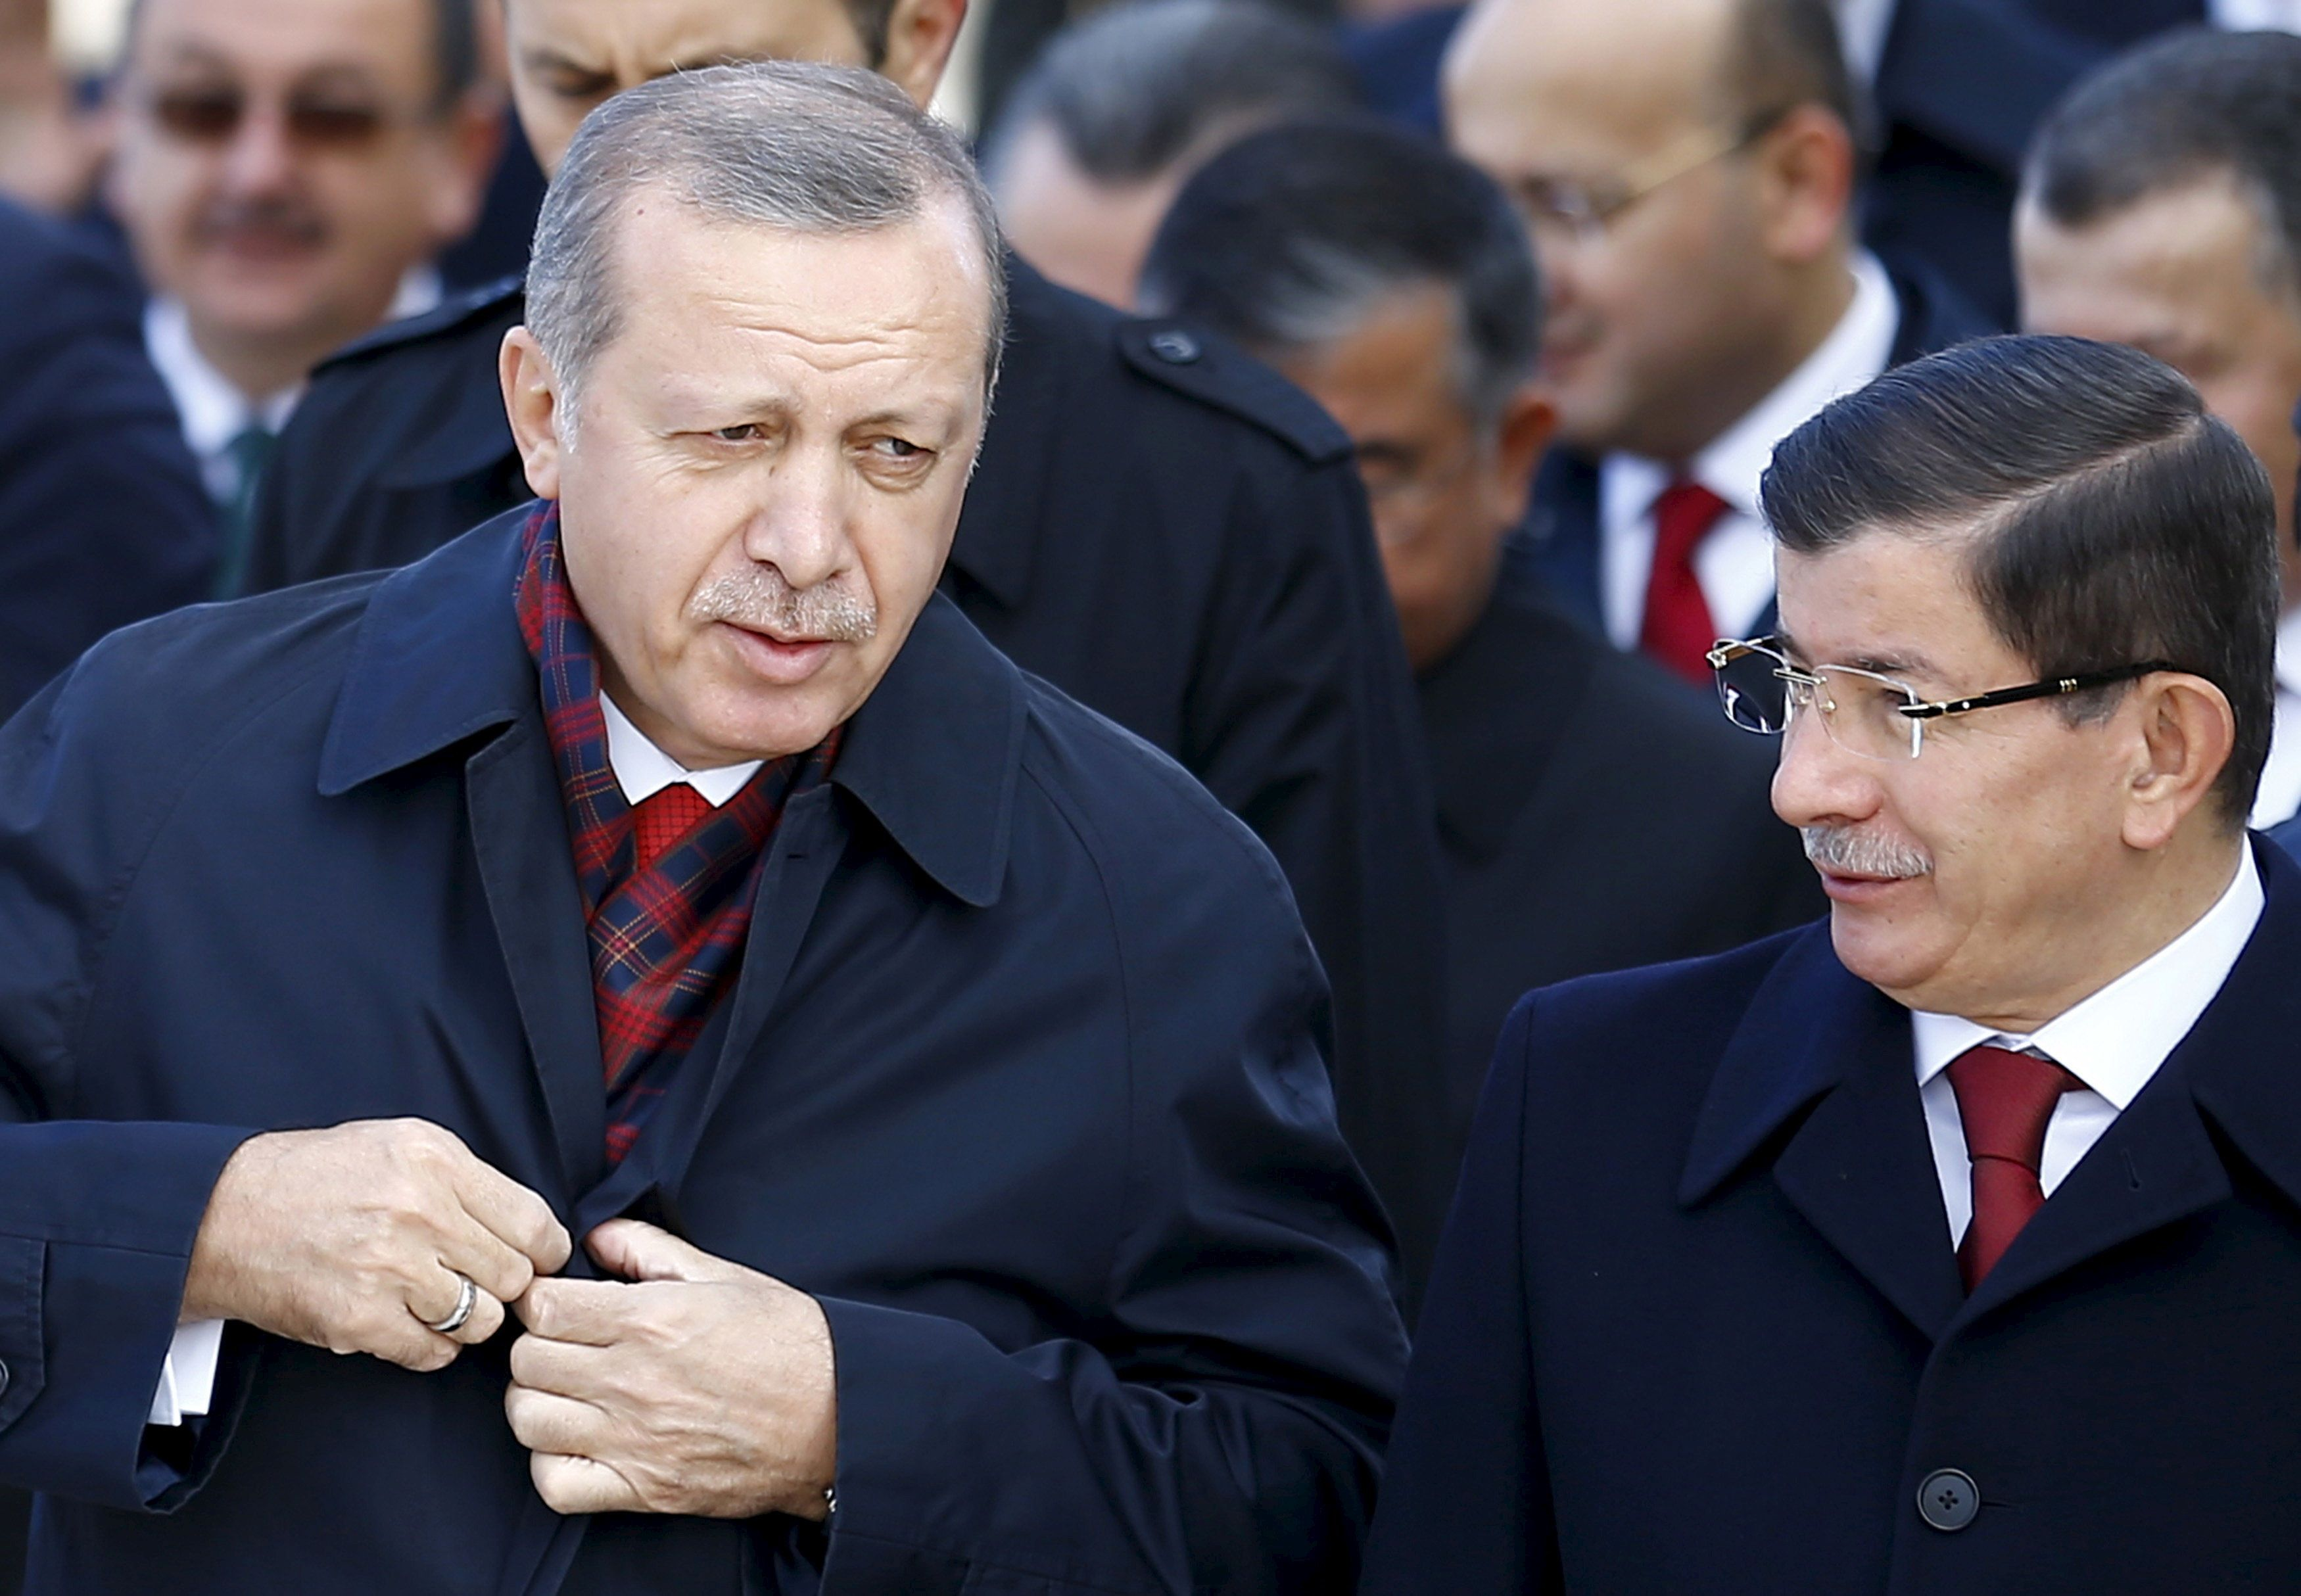 Turkey's President Tayyip Erdogan (L) chats with Prime Minister Ahmet Davutoglu during a Republic Day ceremony at Anitkabir, the mausoleum of modern Turkey's founder Ataturk, in Ankara, Turkey, October 29, 2015. Turkey marks the 92nd anniversary of the Turkish Republic. REUTERS/Umit Bektas